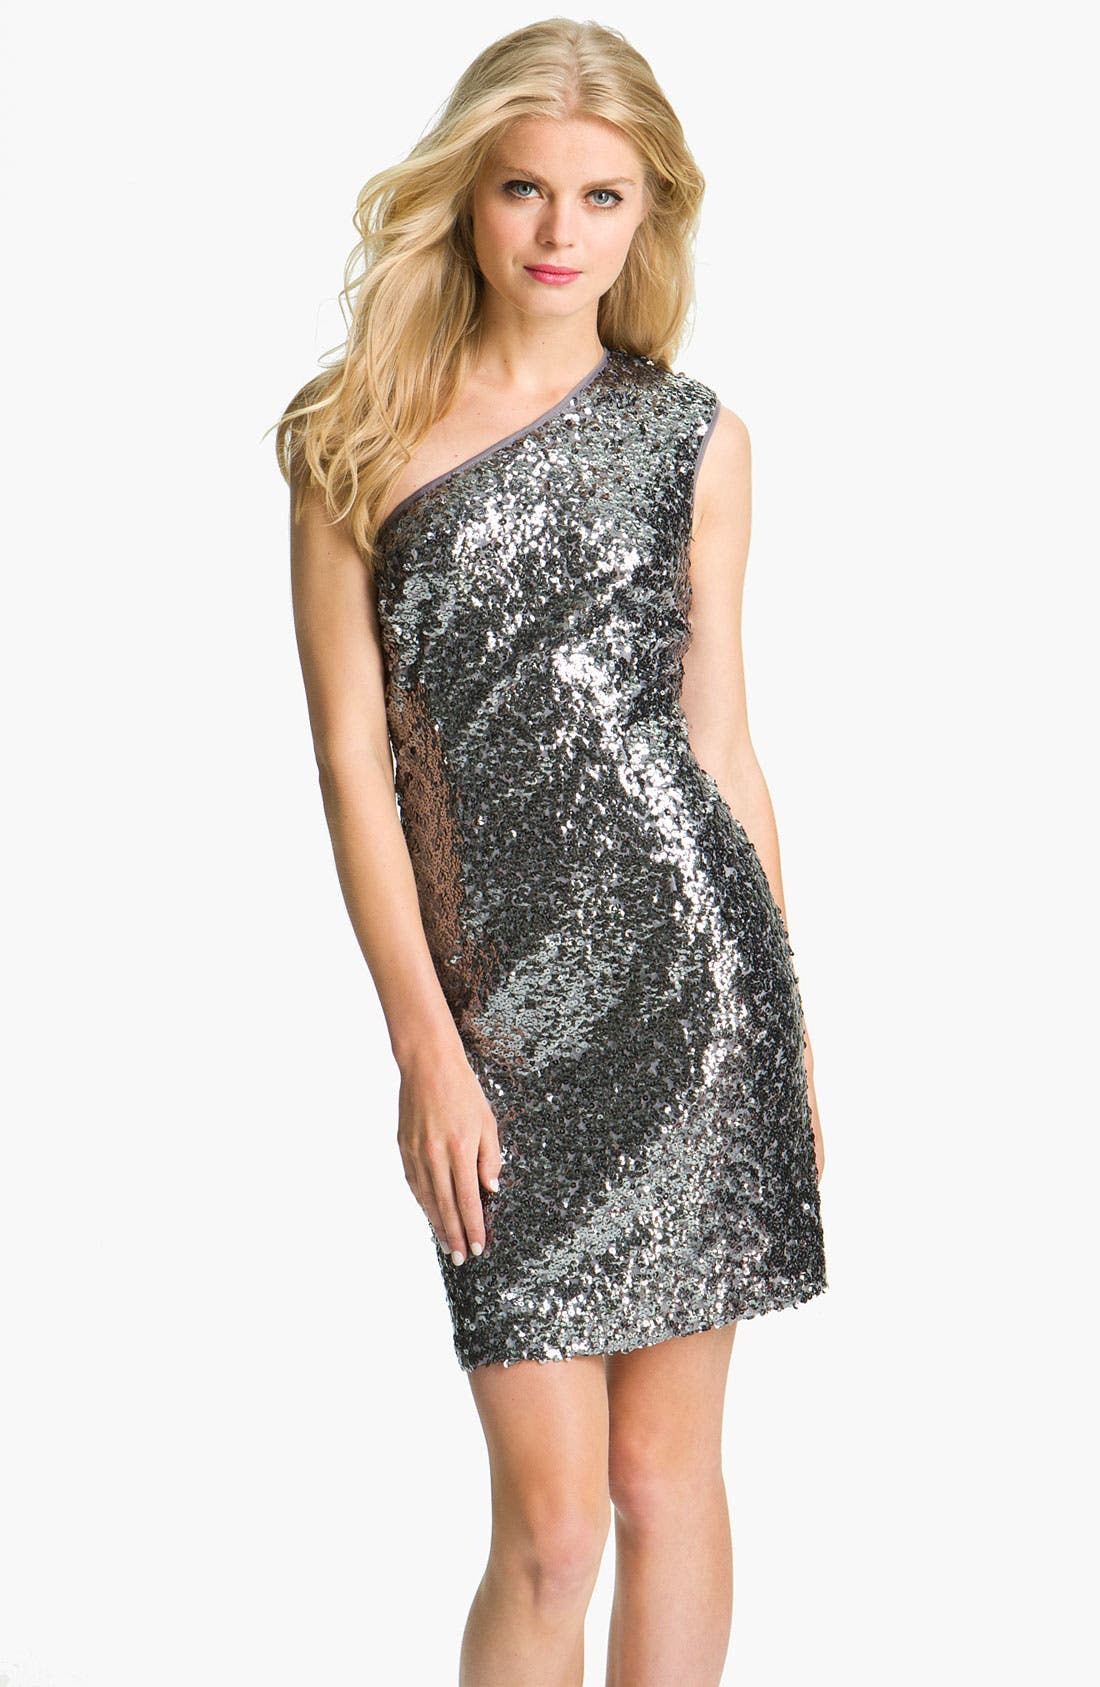 Alternate Image 1 Selected - Adrianna Papell One Shoulder Sequin Dress